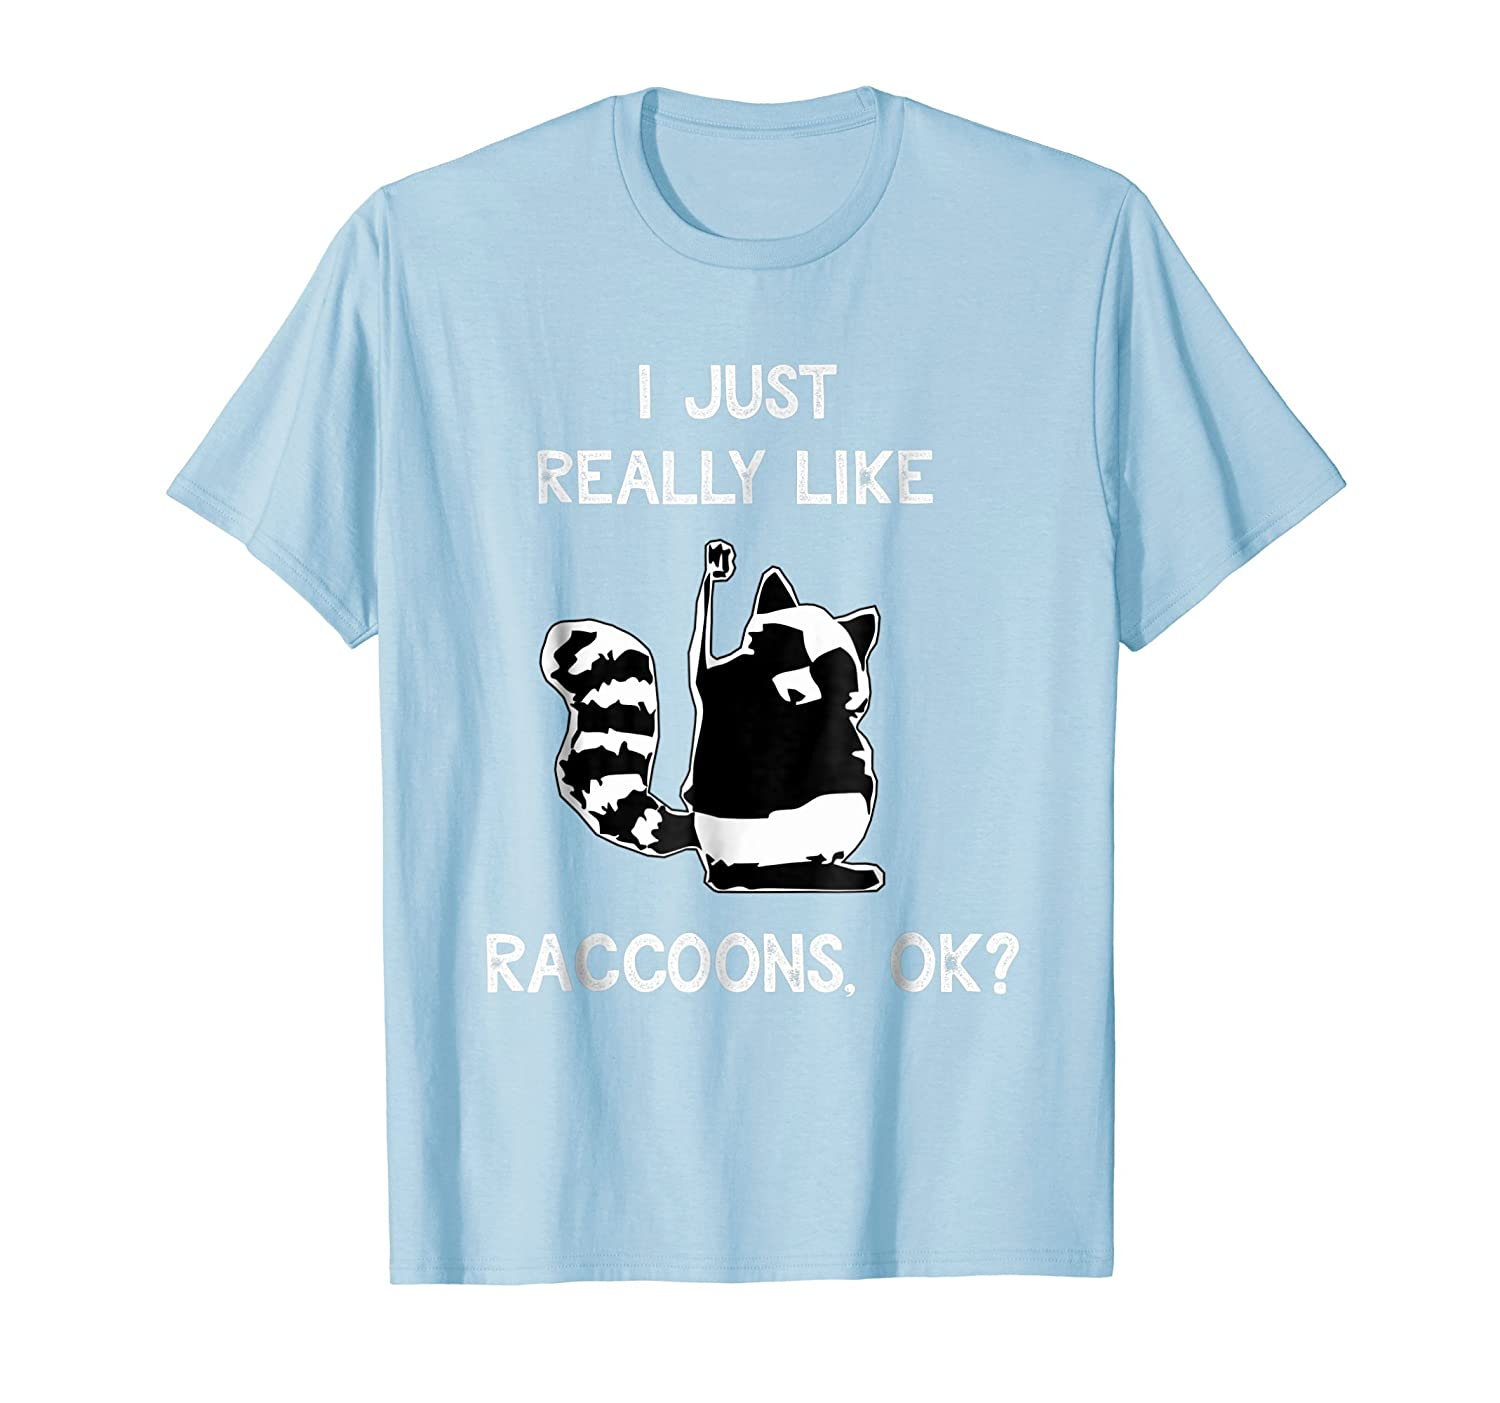 df58001e9 ... 10% Polyester; All Other Heathers: 50% Cotton, 50% Polyester Imported  Machine wash cold with like colors, dry low heat. Do you love trash panda  shirts?